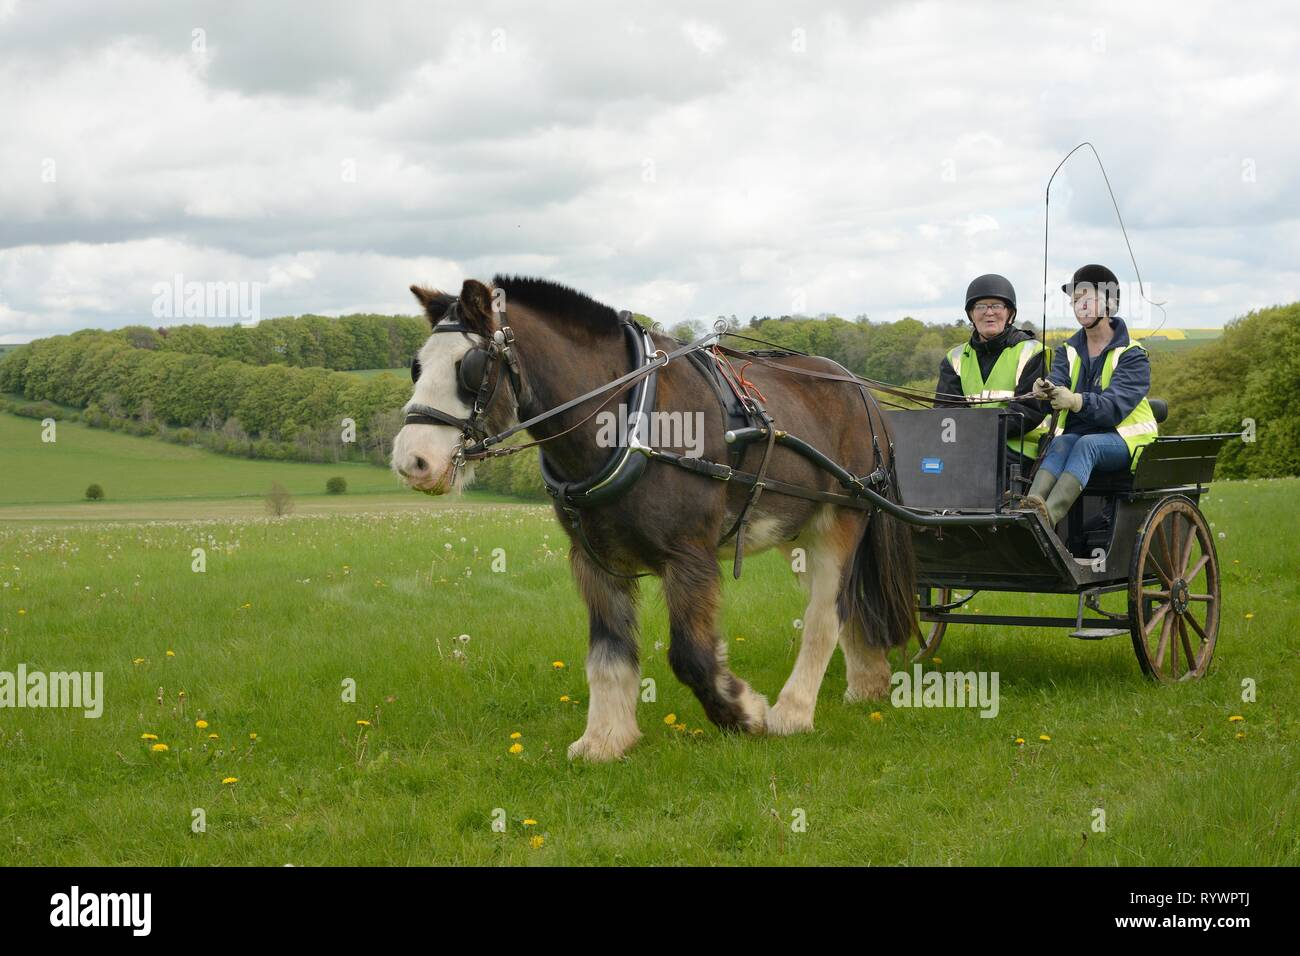 Carriage Driving run by the Riding for the Disabled Association, near Manton the Marlborough Downs, Wiltshire, UK. - Stock Image